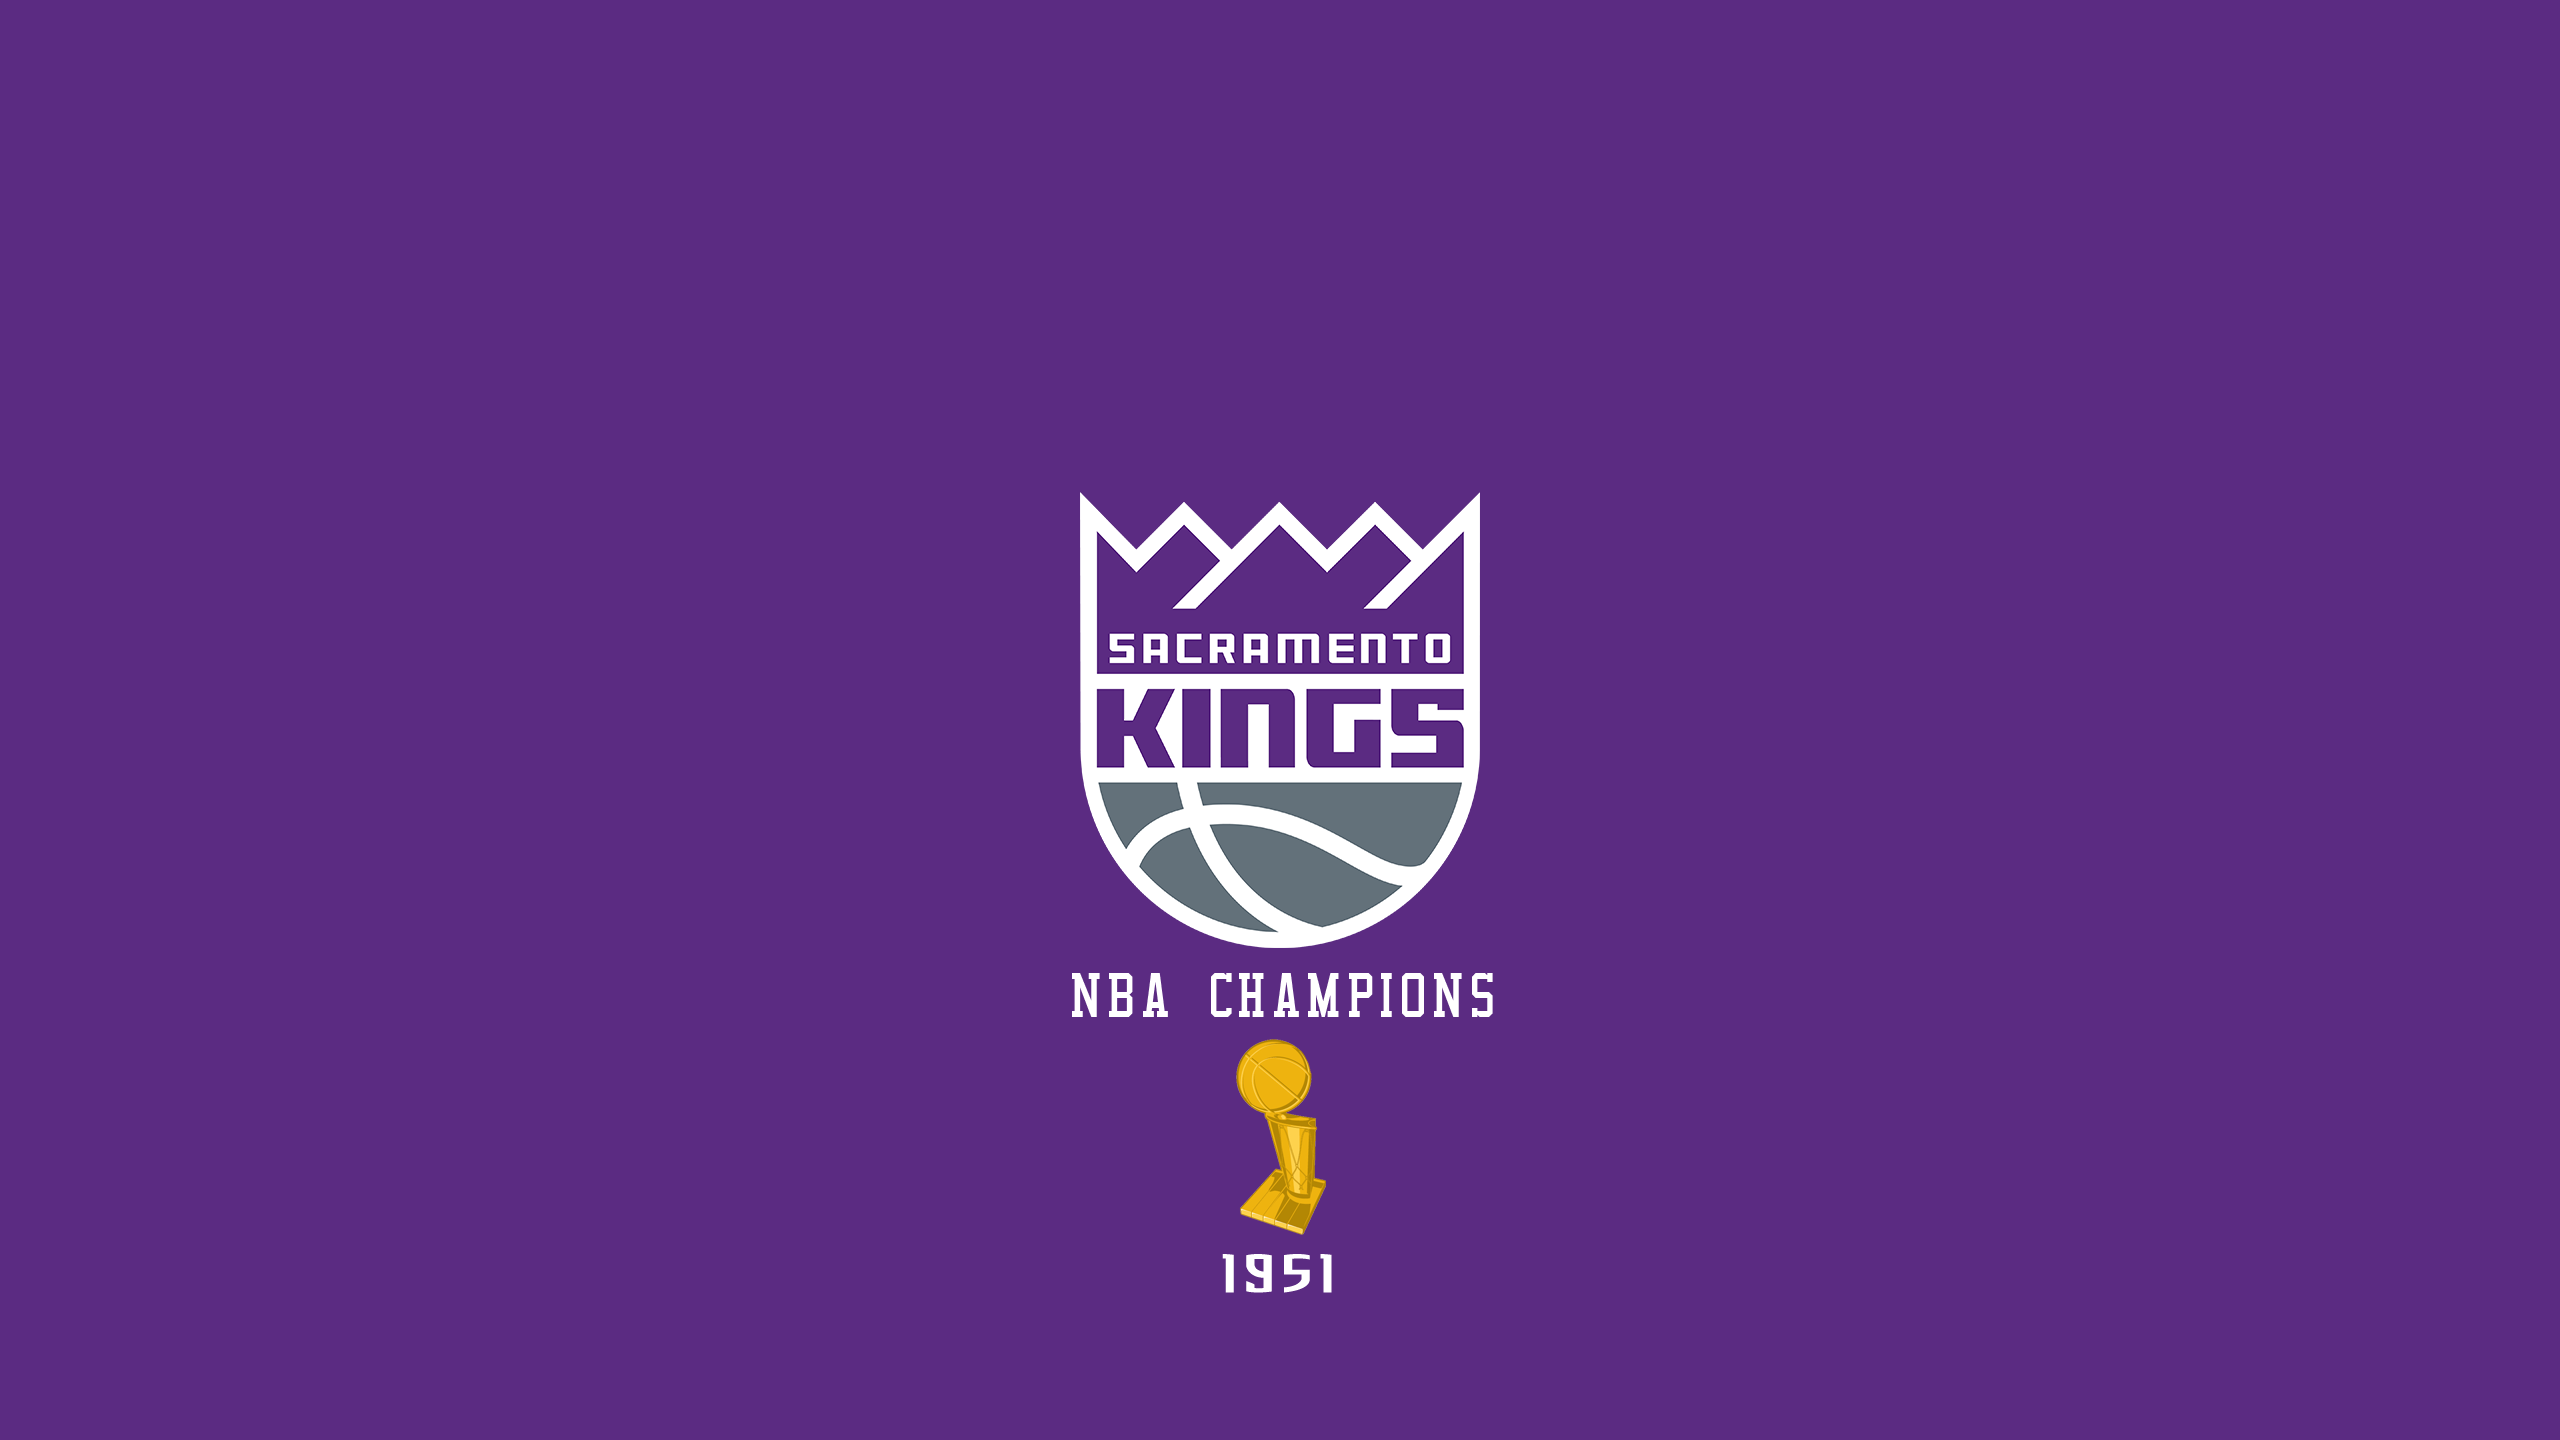 Sacramento Kings - NBA Champs